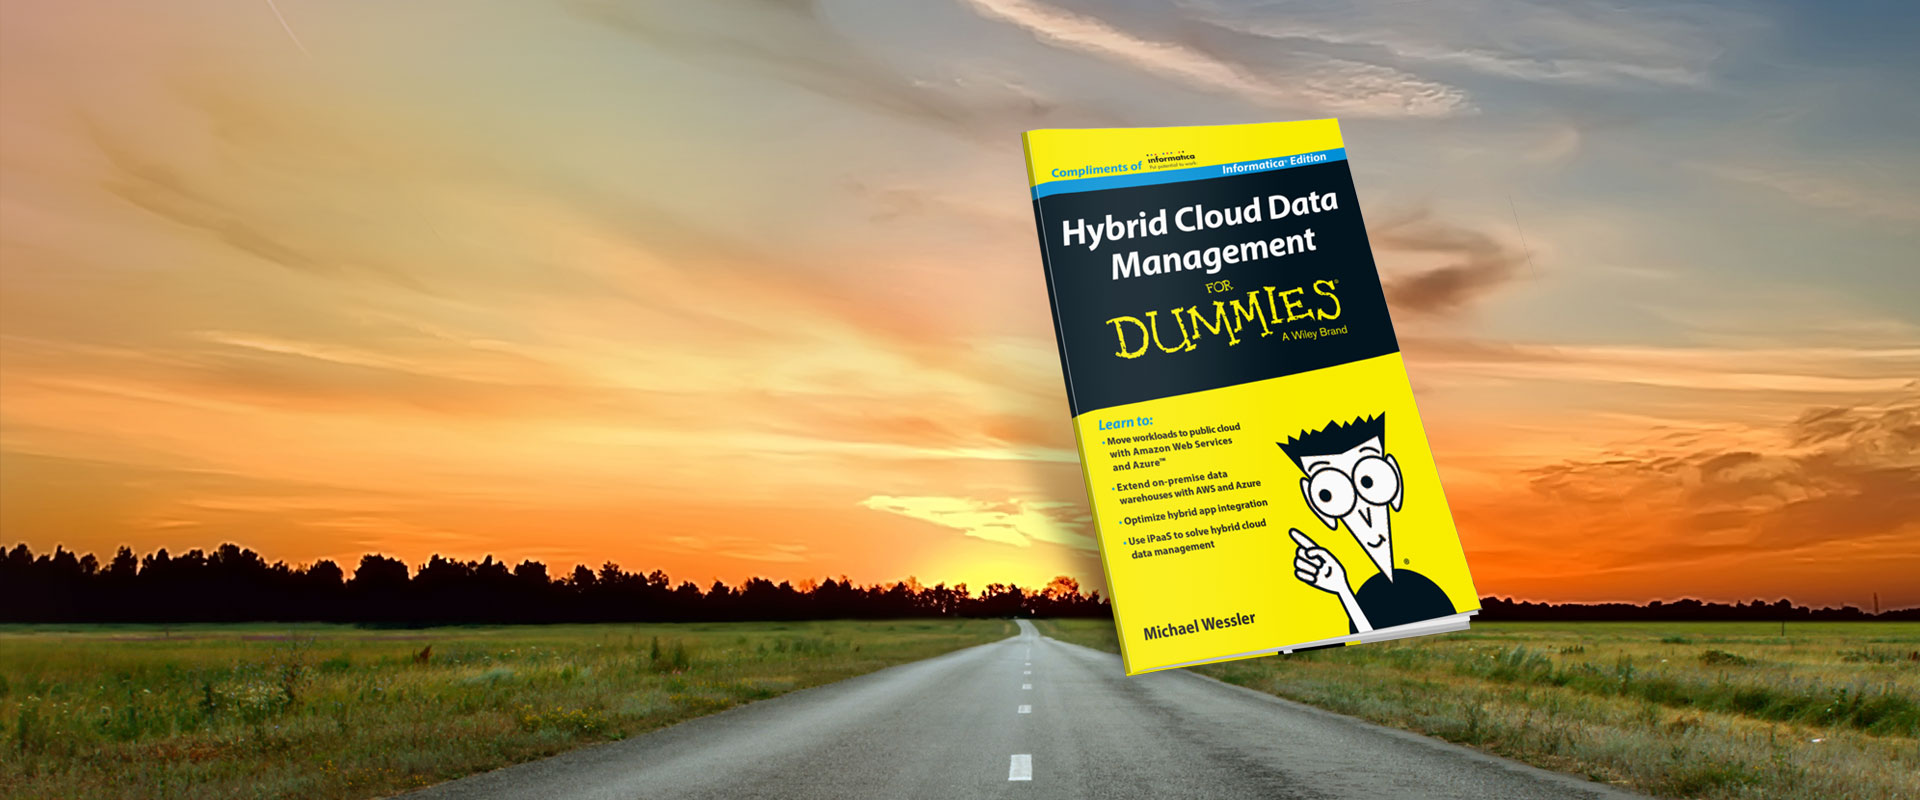 h01-hybrid-cloud-dummies-3159